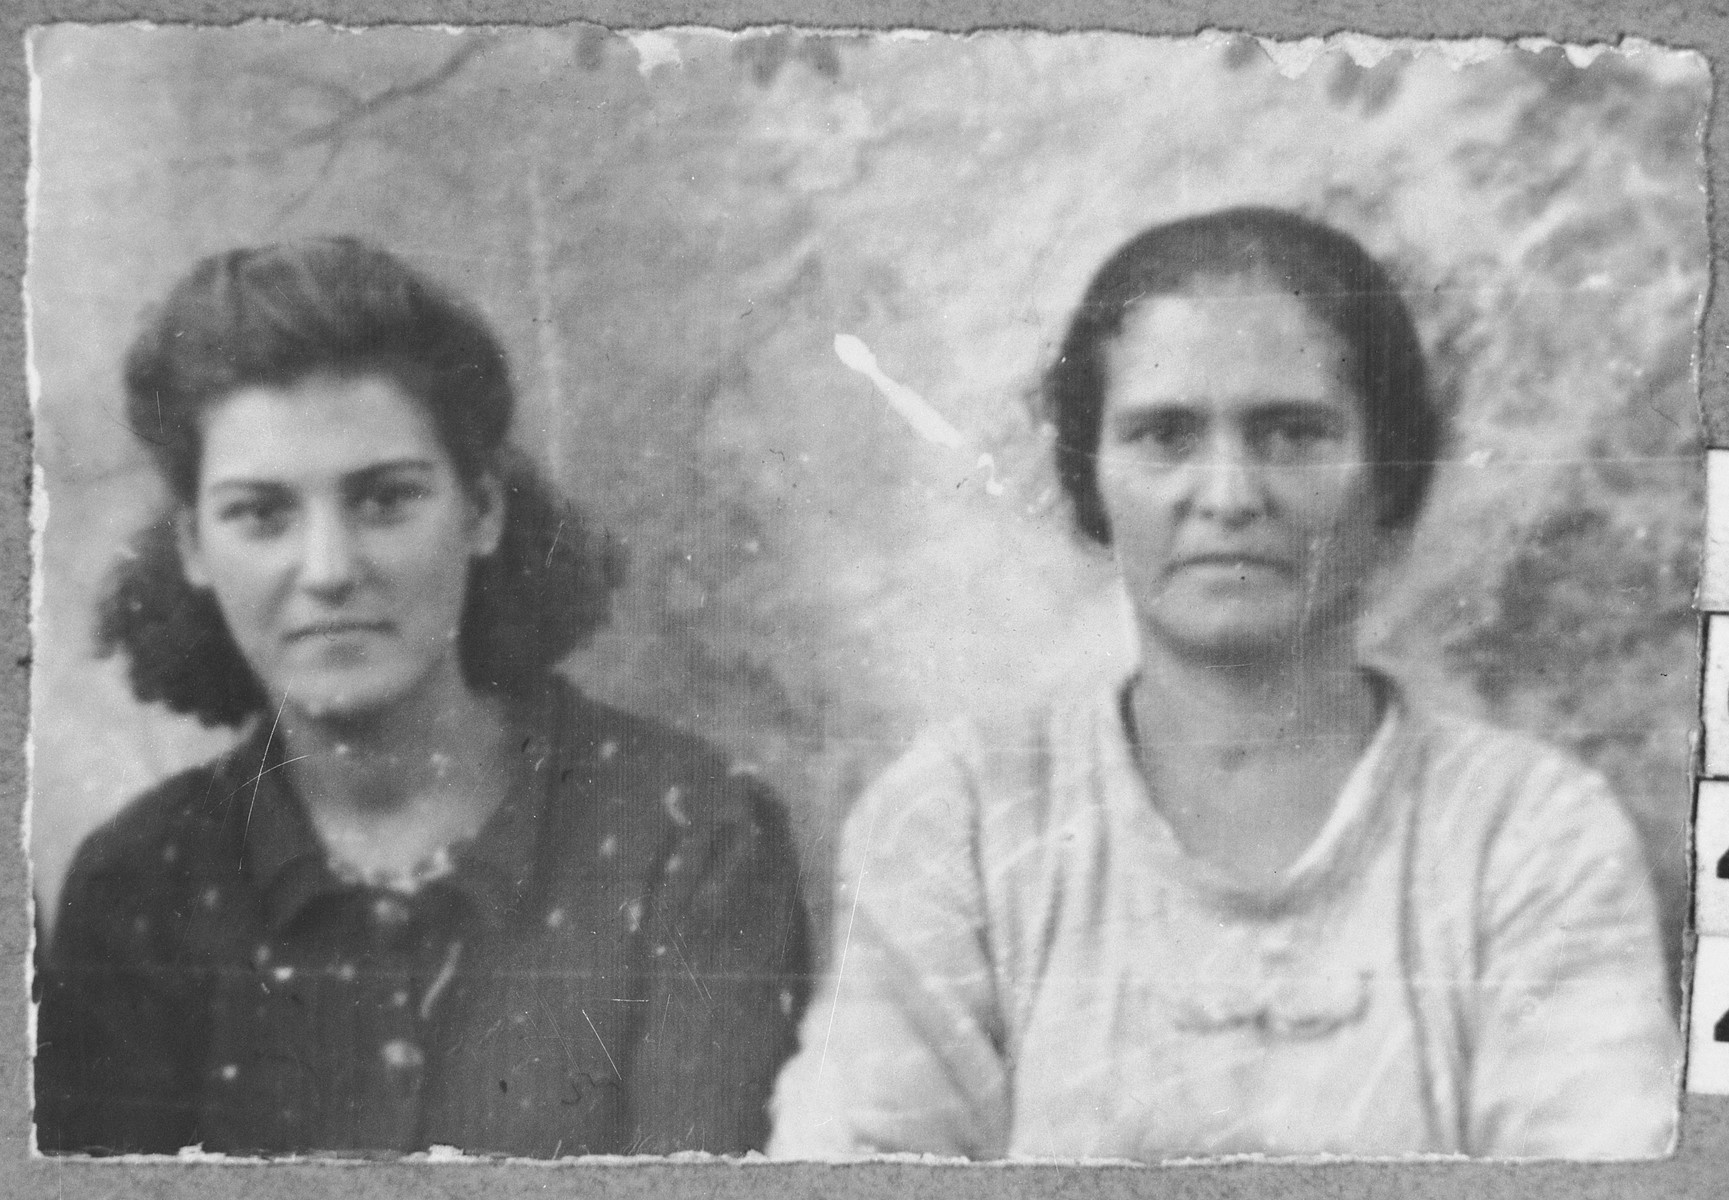 Portrait of Bohora Hasson and Luna Hasson (patronymic: Bohor).  Bohora was a laundress and Luna, a housemaid.  They lived at Zmayeva 21 in Bitola.